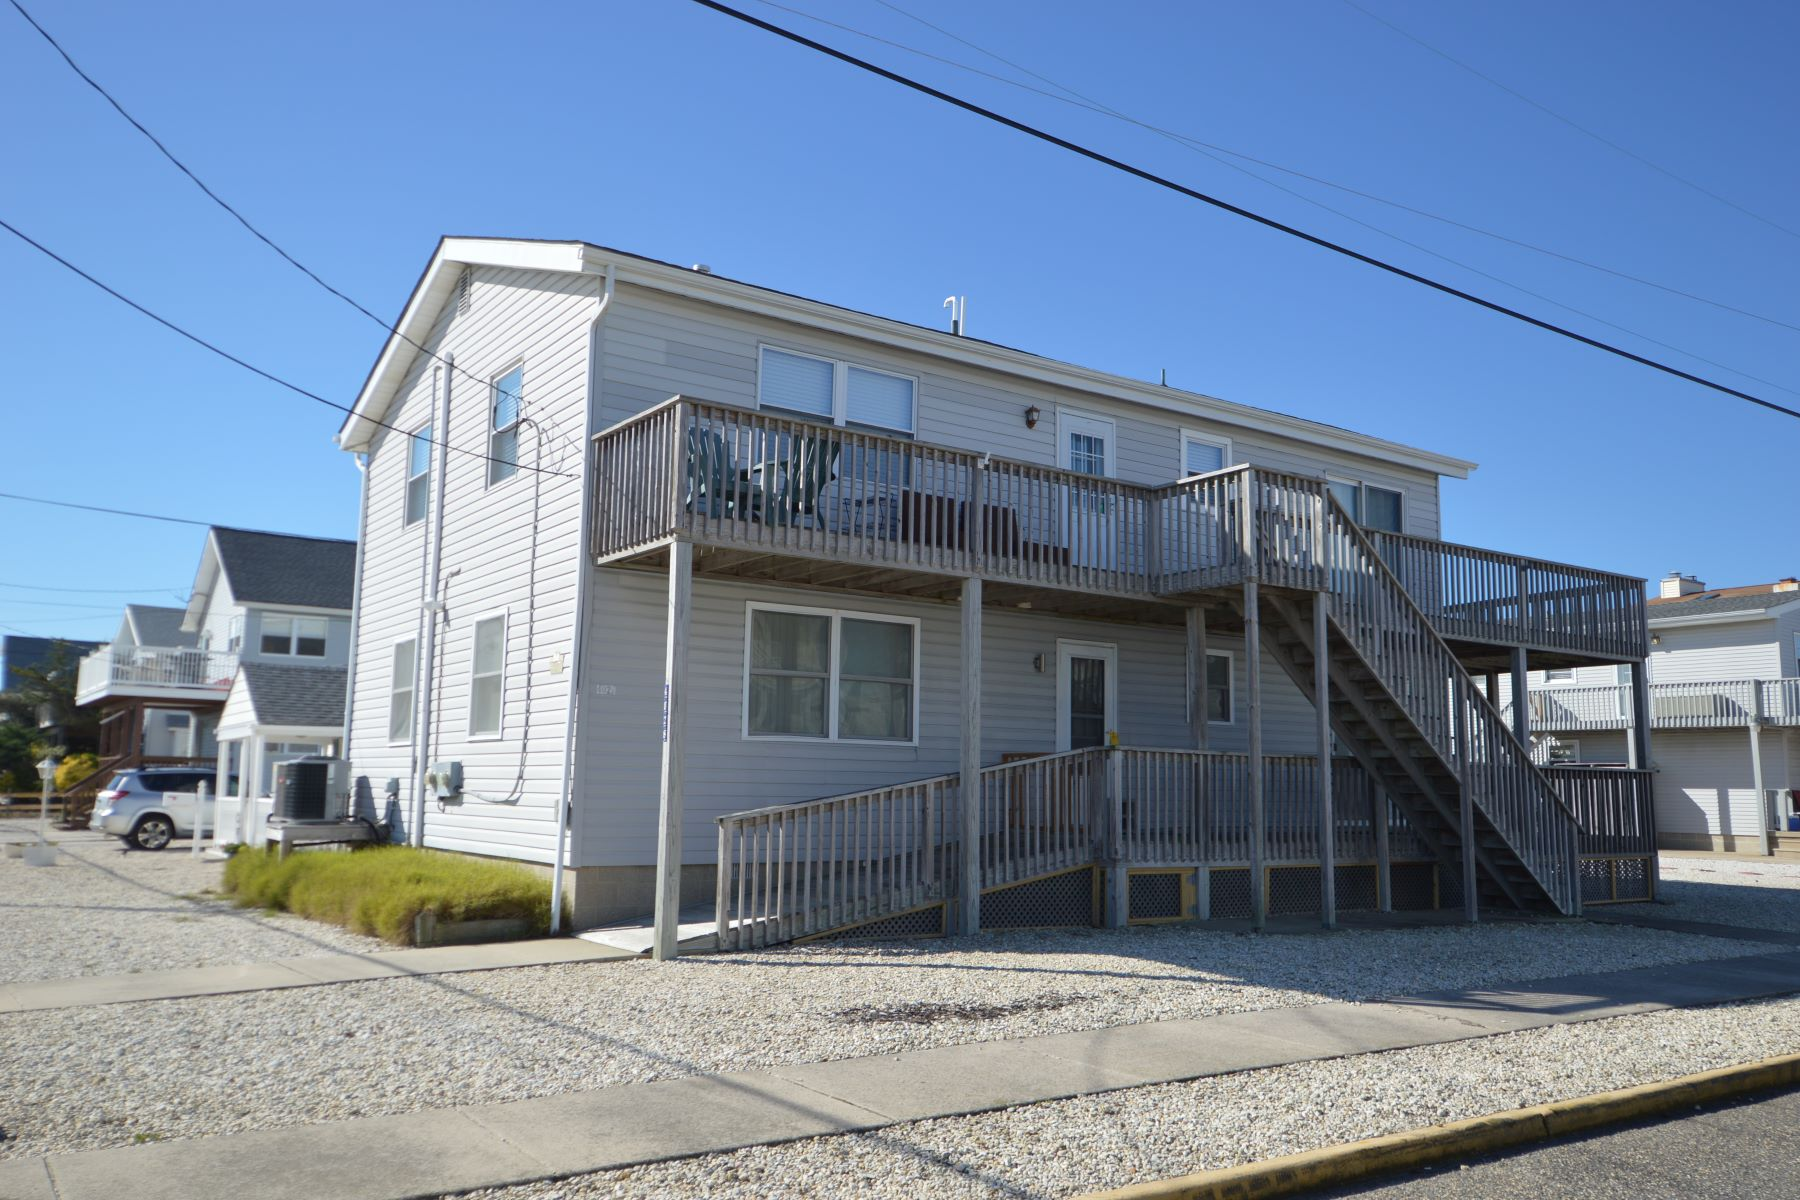 Townhouse for Sale at Ocean Drive Corner Duplex 4028 Ocean Drive 2nd Floor, Avalon, New Jersey 08202 United States